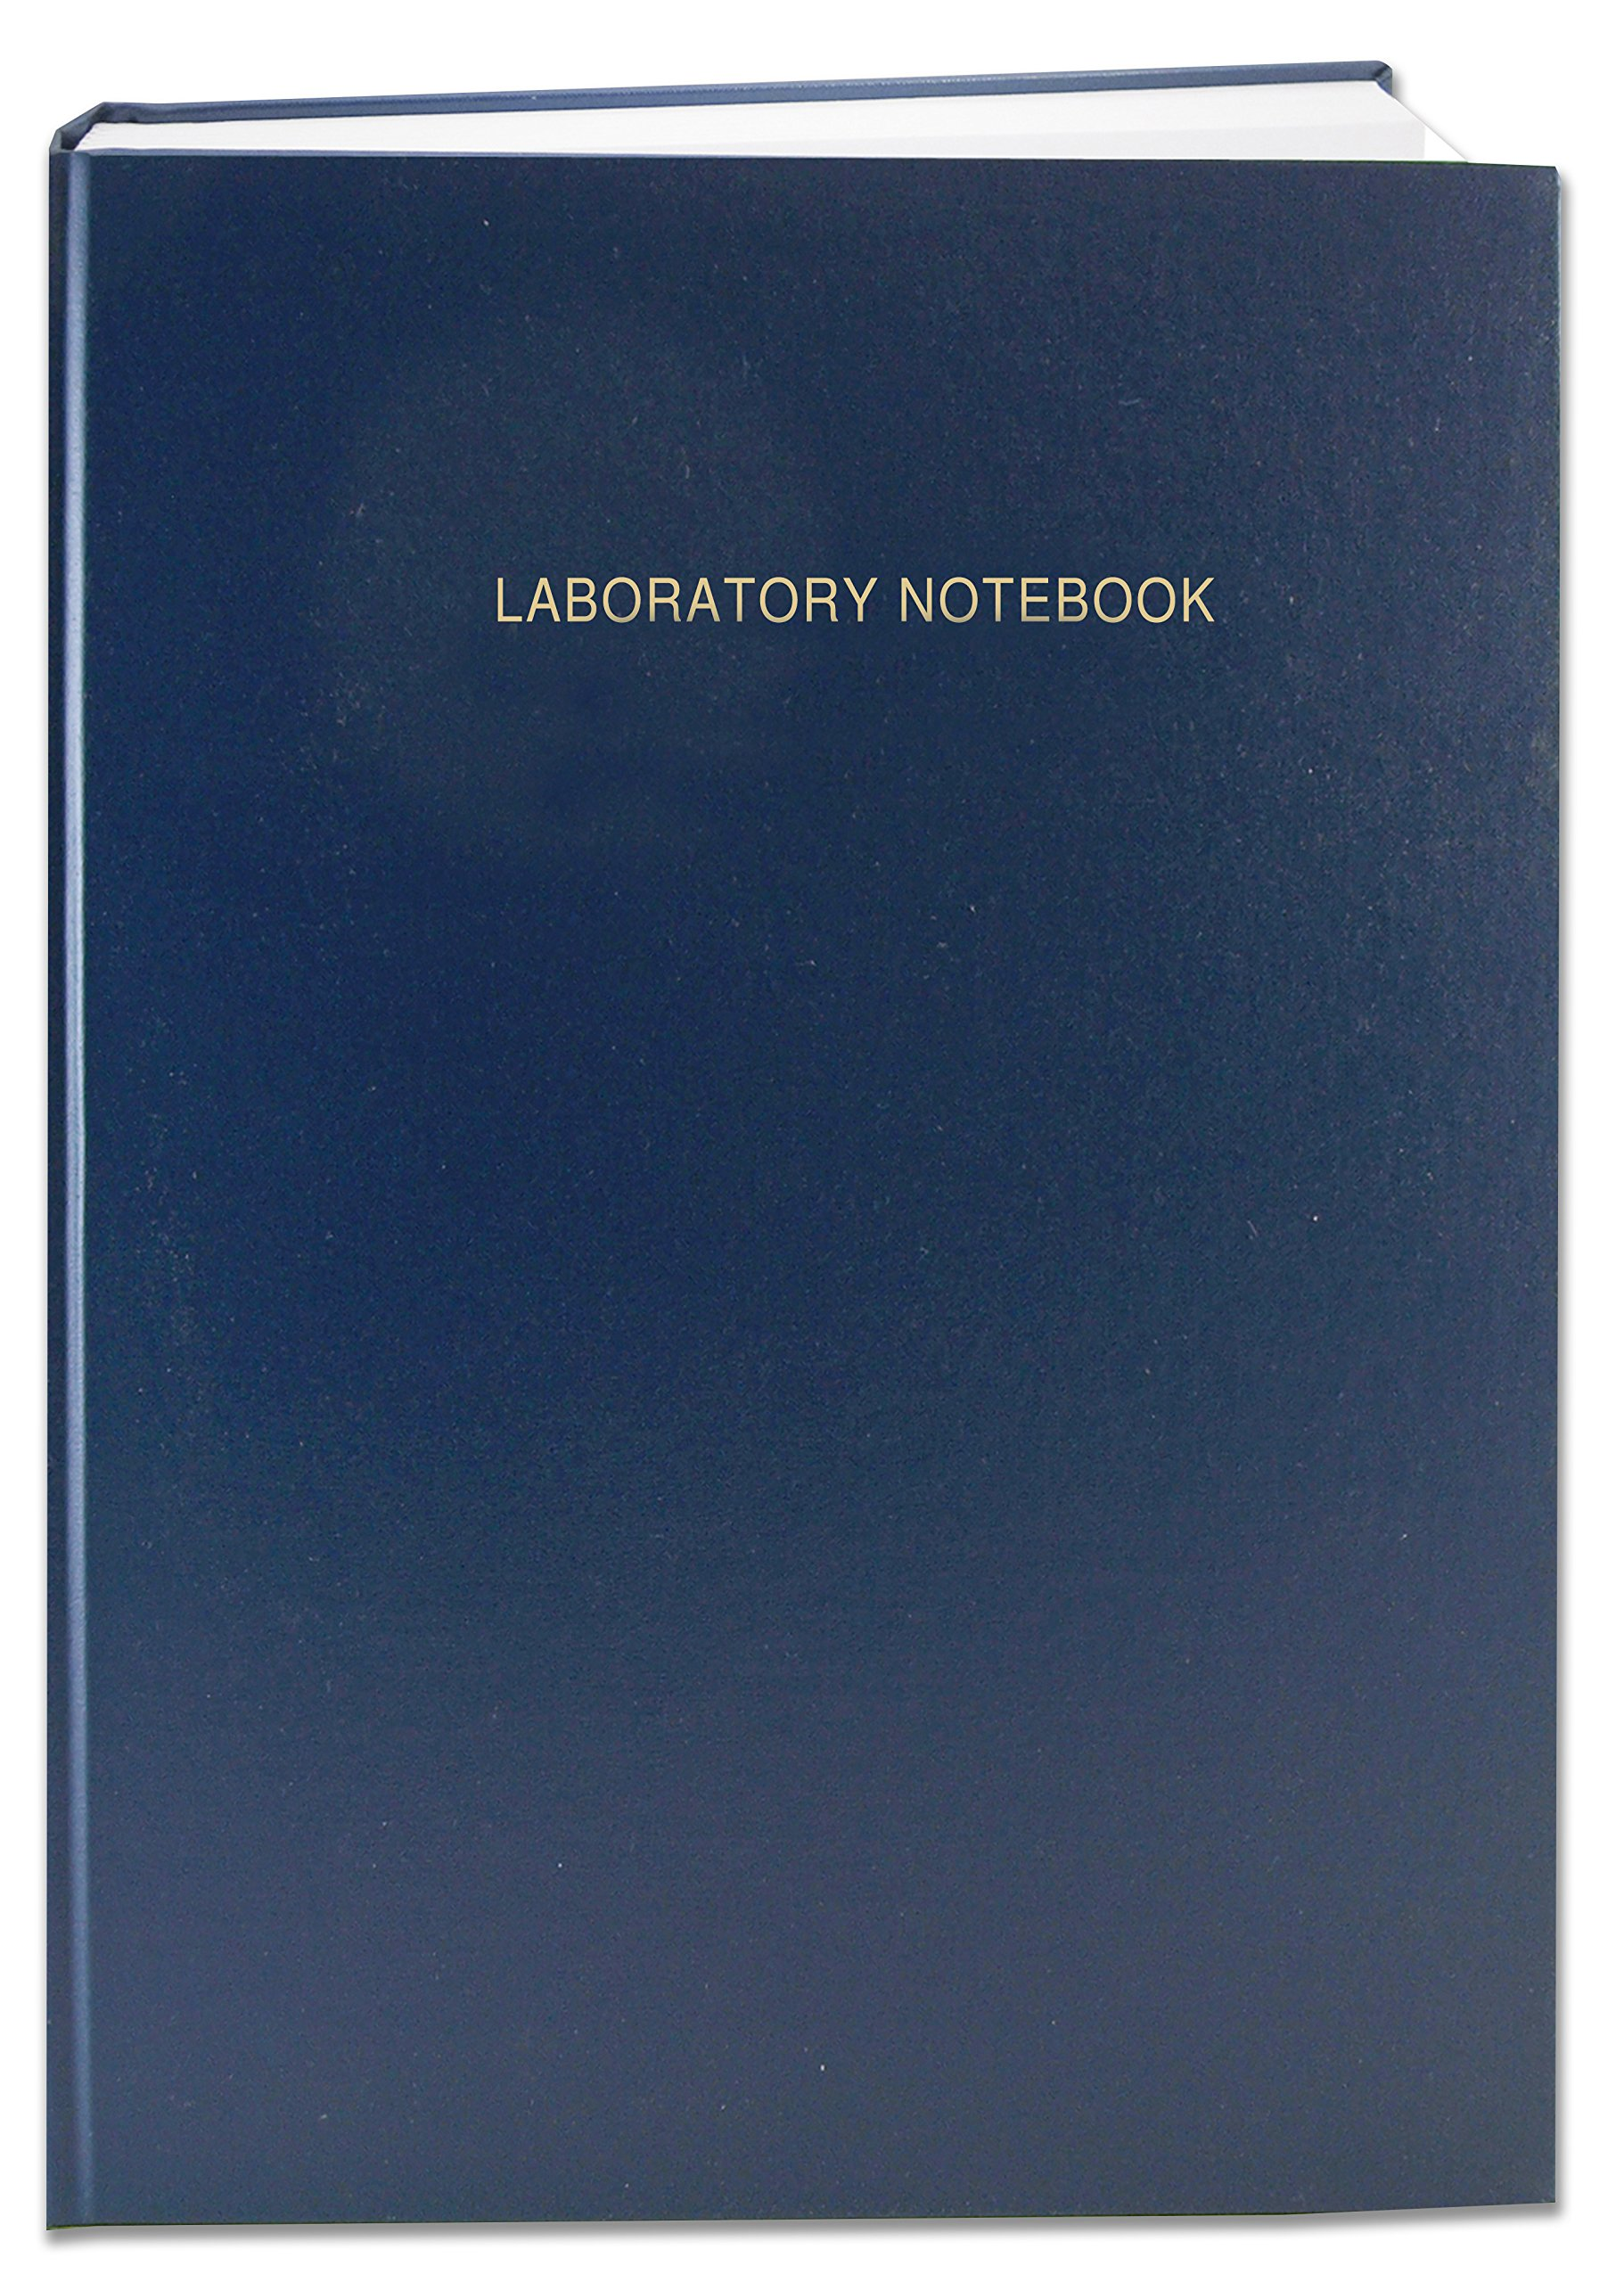 BookFactory Blue A4 Lab Notebook - 96 Pages (5mm Grid Format) A4-8.27 x 11.69 (21 cm x 29.7cm) Blue Cover Smyth Sewn Hardbound Laboratory Notebook (LIRPE-096-4GR-A-LBT1) by BookFactory